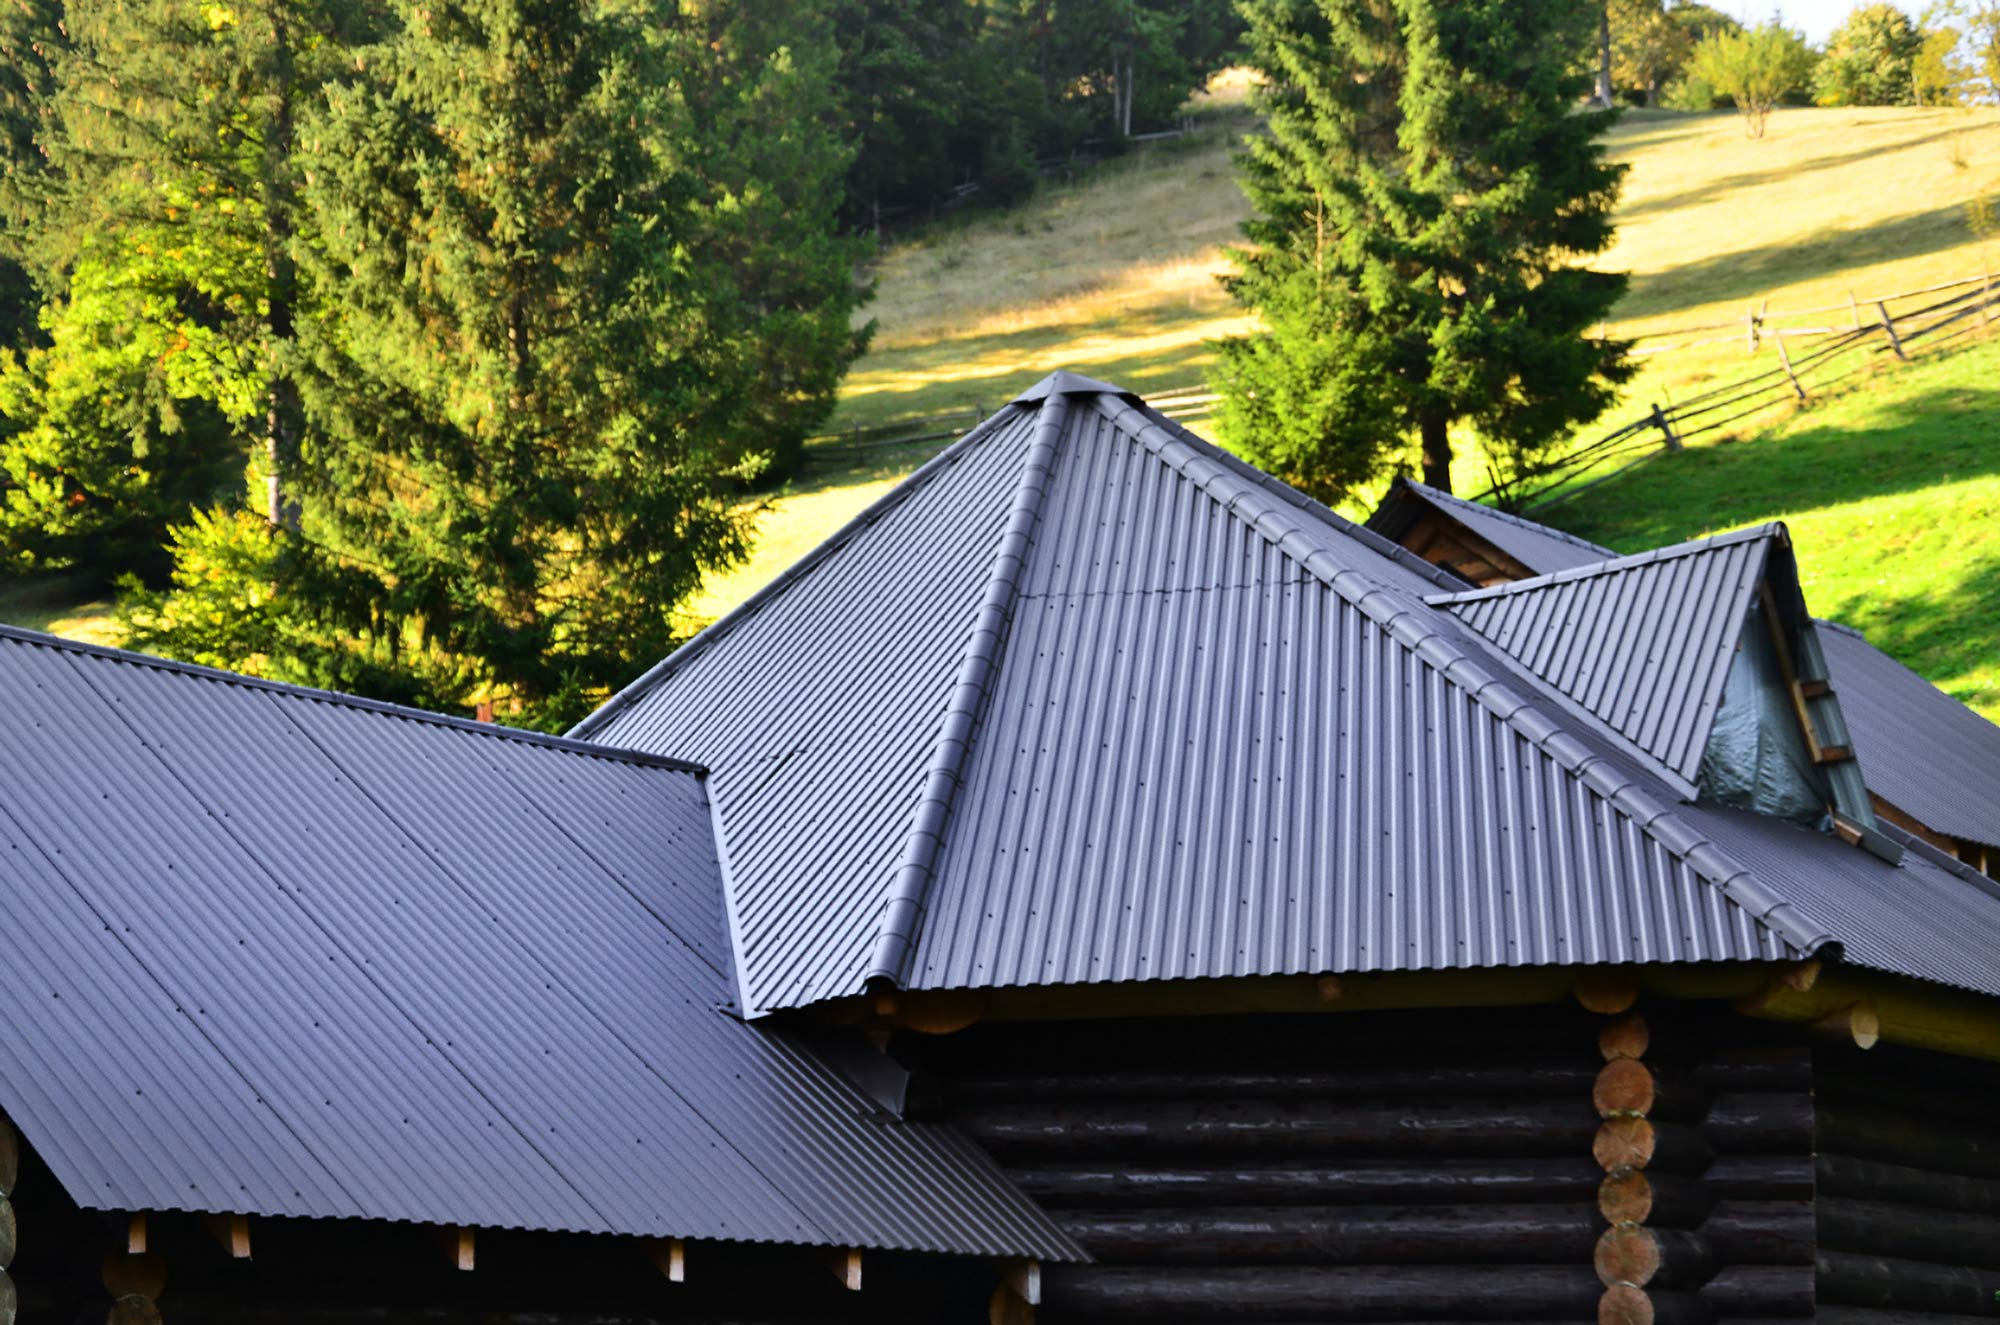 Why choose metal roofing?